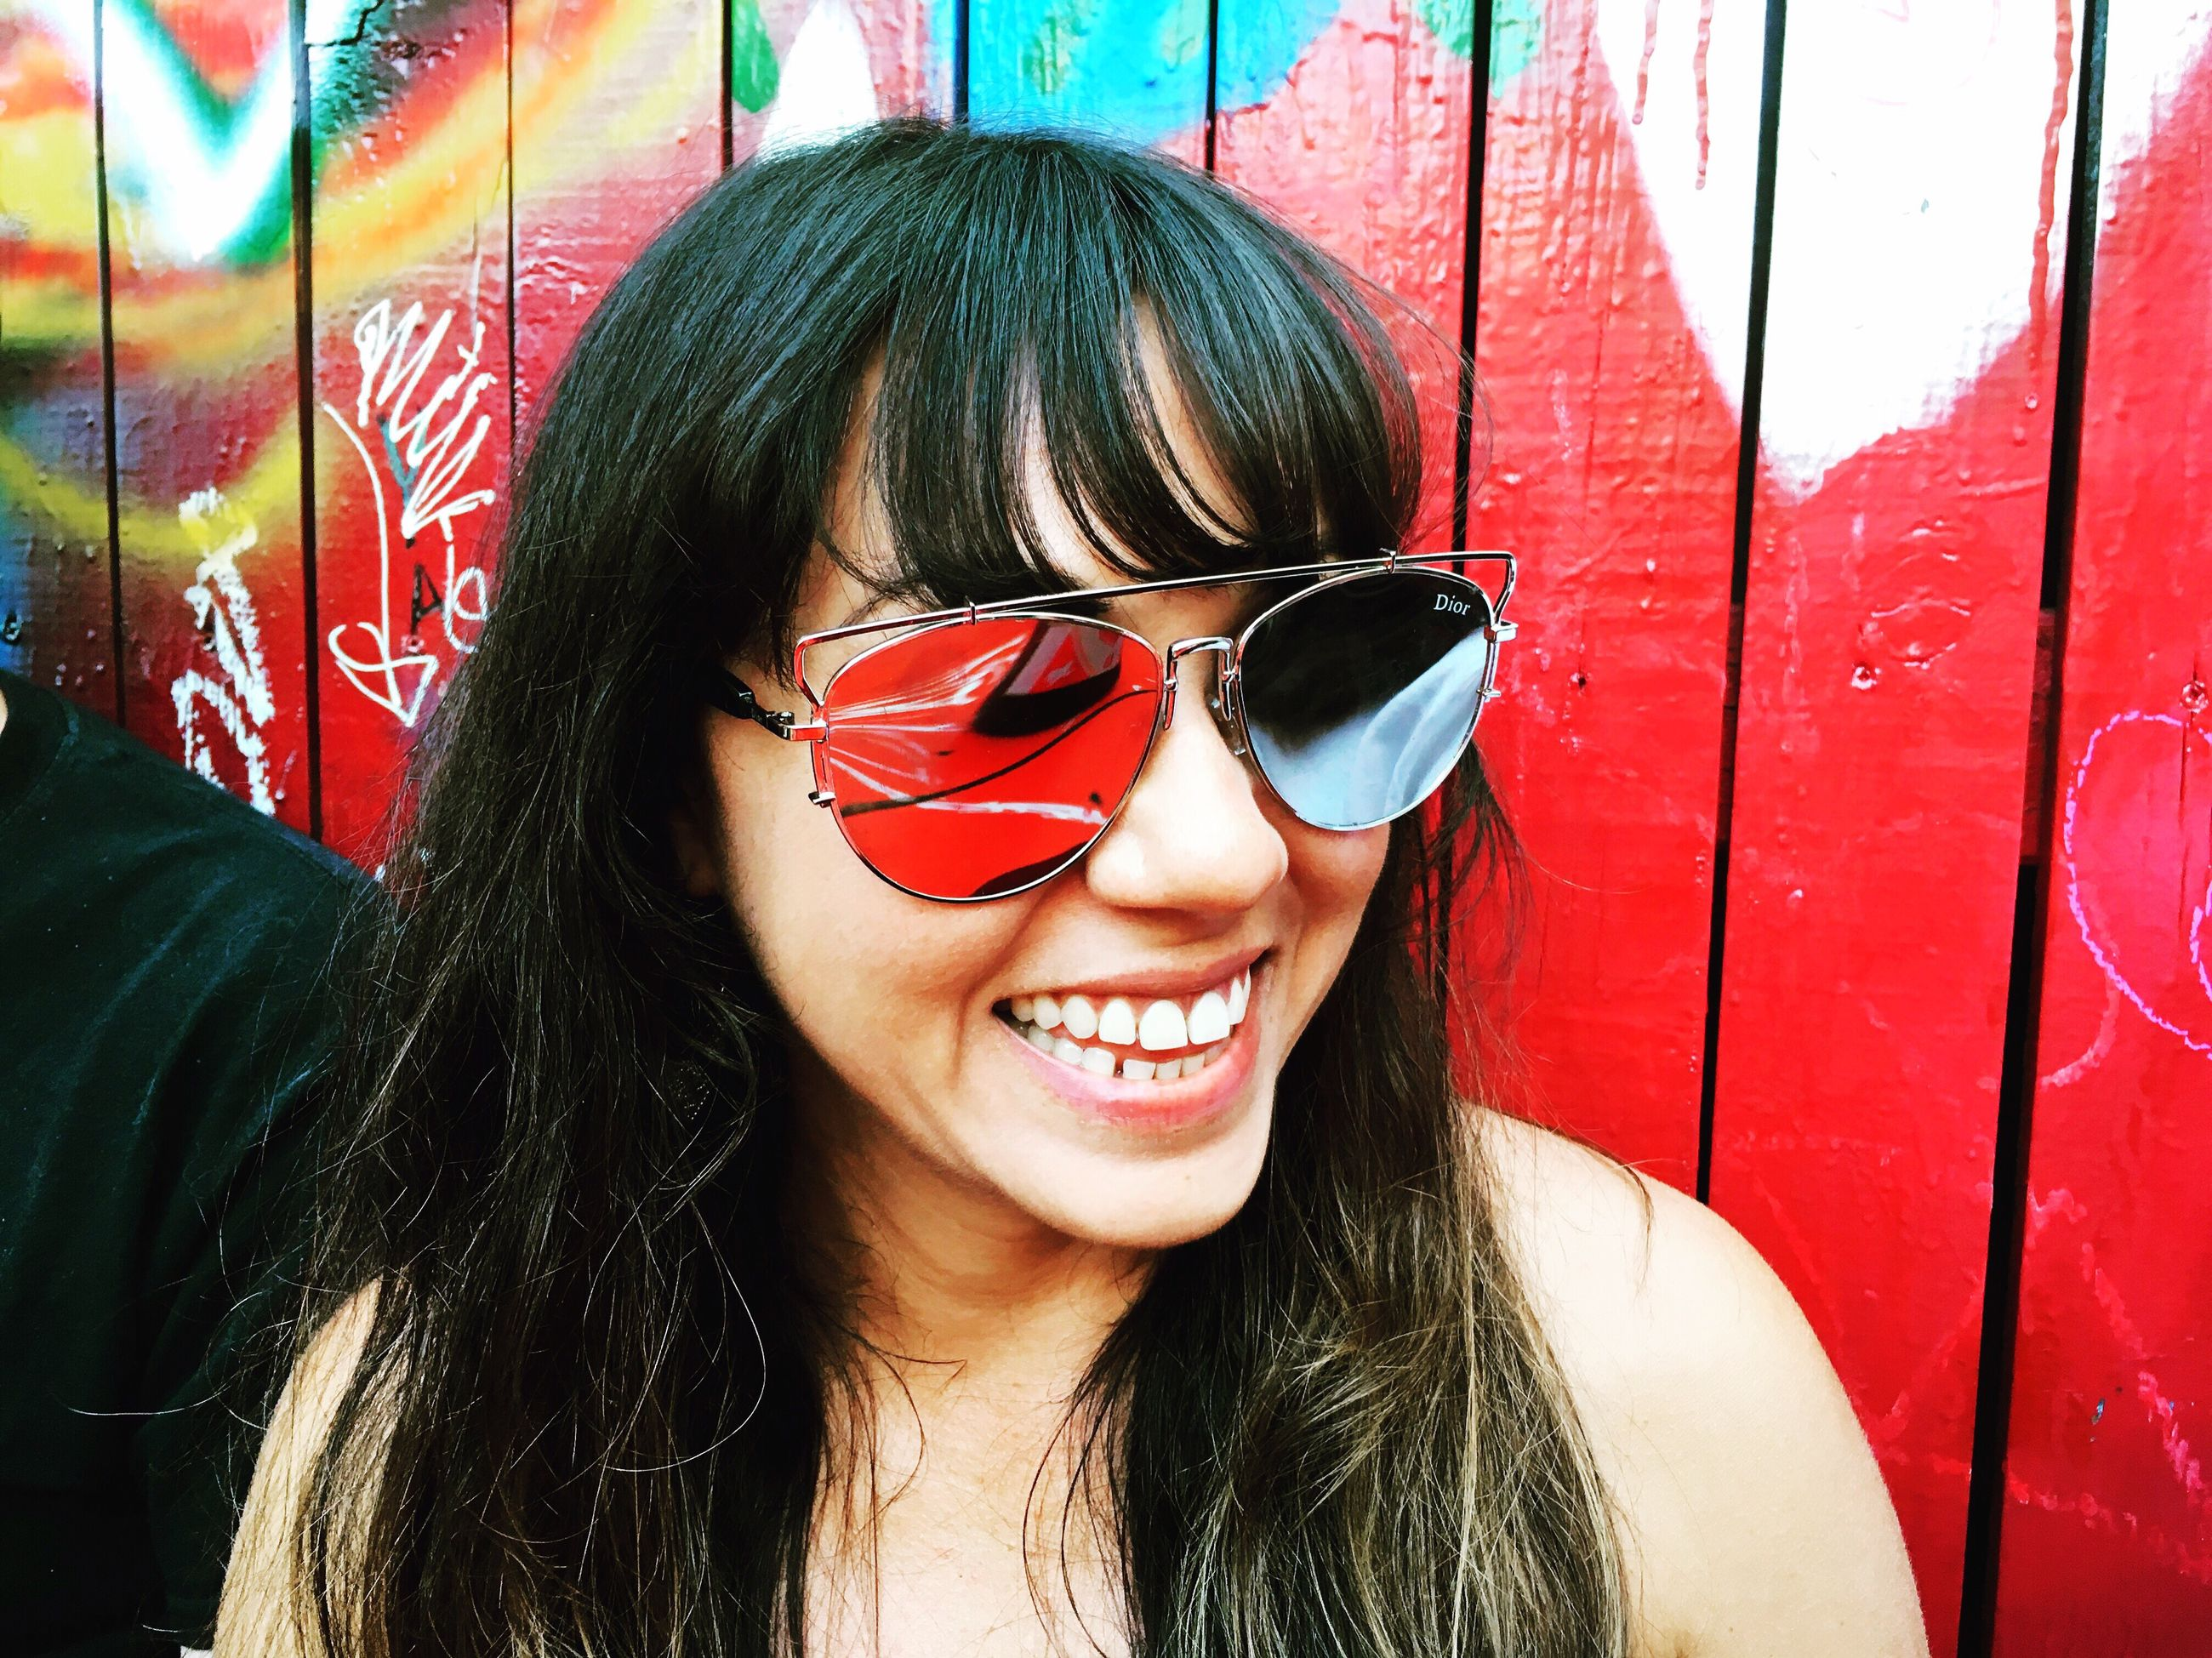 smiling, headshot, sunglasses, young adult, lifestyles, young women, leisure activity, beauty, person, front view, long hair, looking at camera, focus on foreground